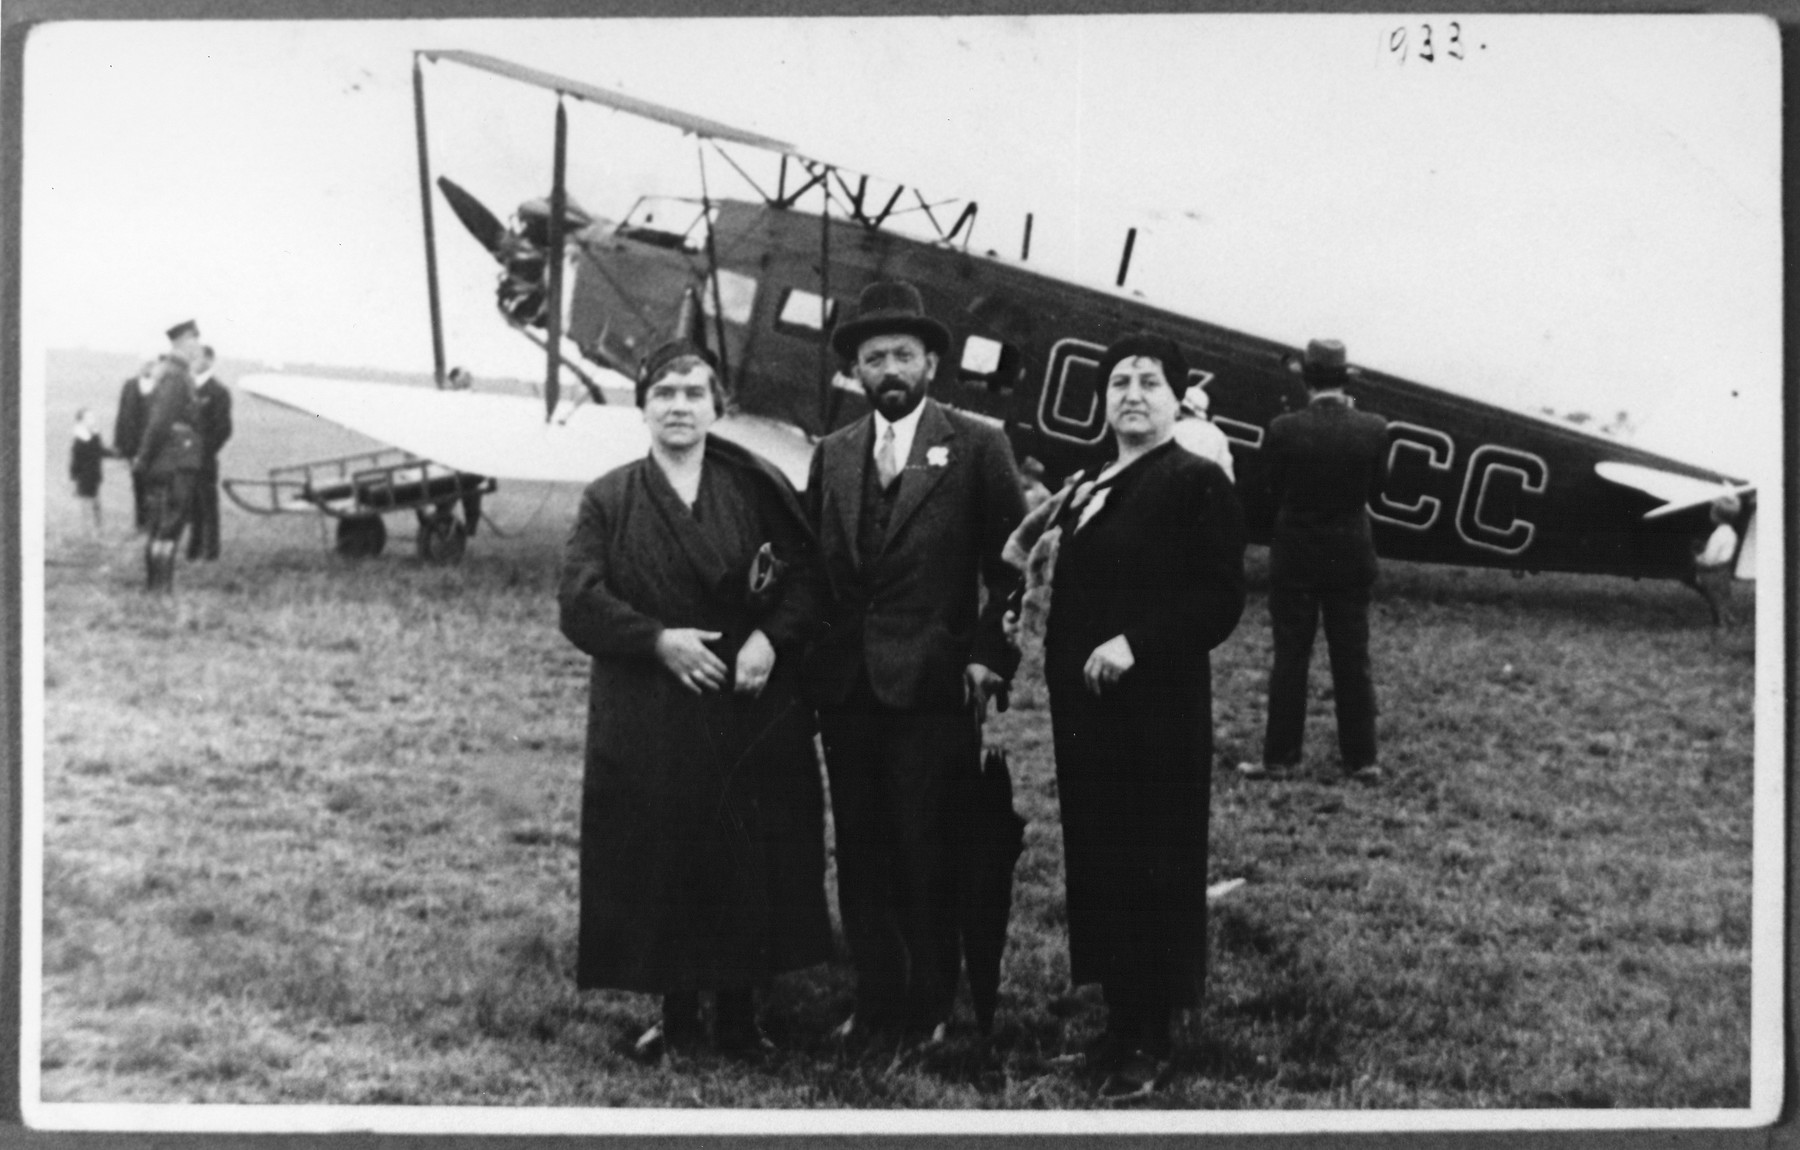 Three Jews pose at an airfield in Slovakia in 1933.  Among those pictured is Gizella Fischer (the mother of Gabriela Deutsch) on the right.